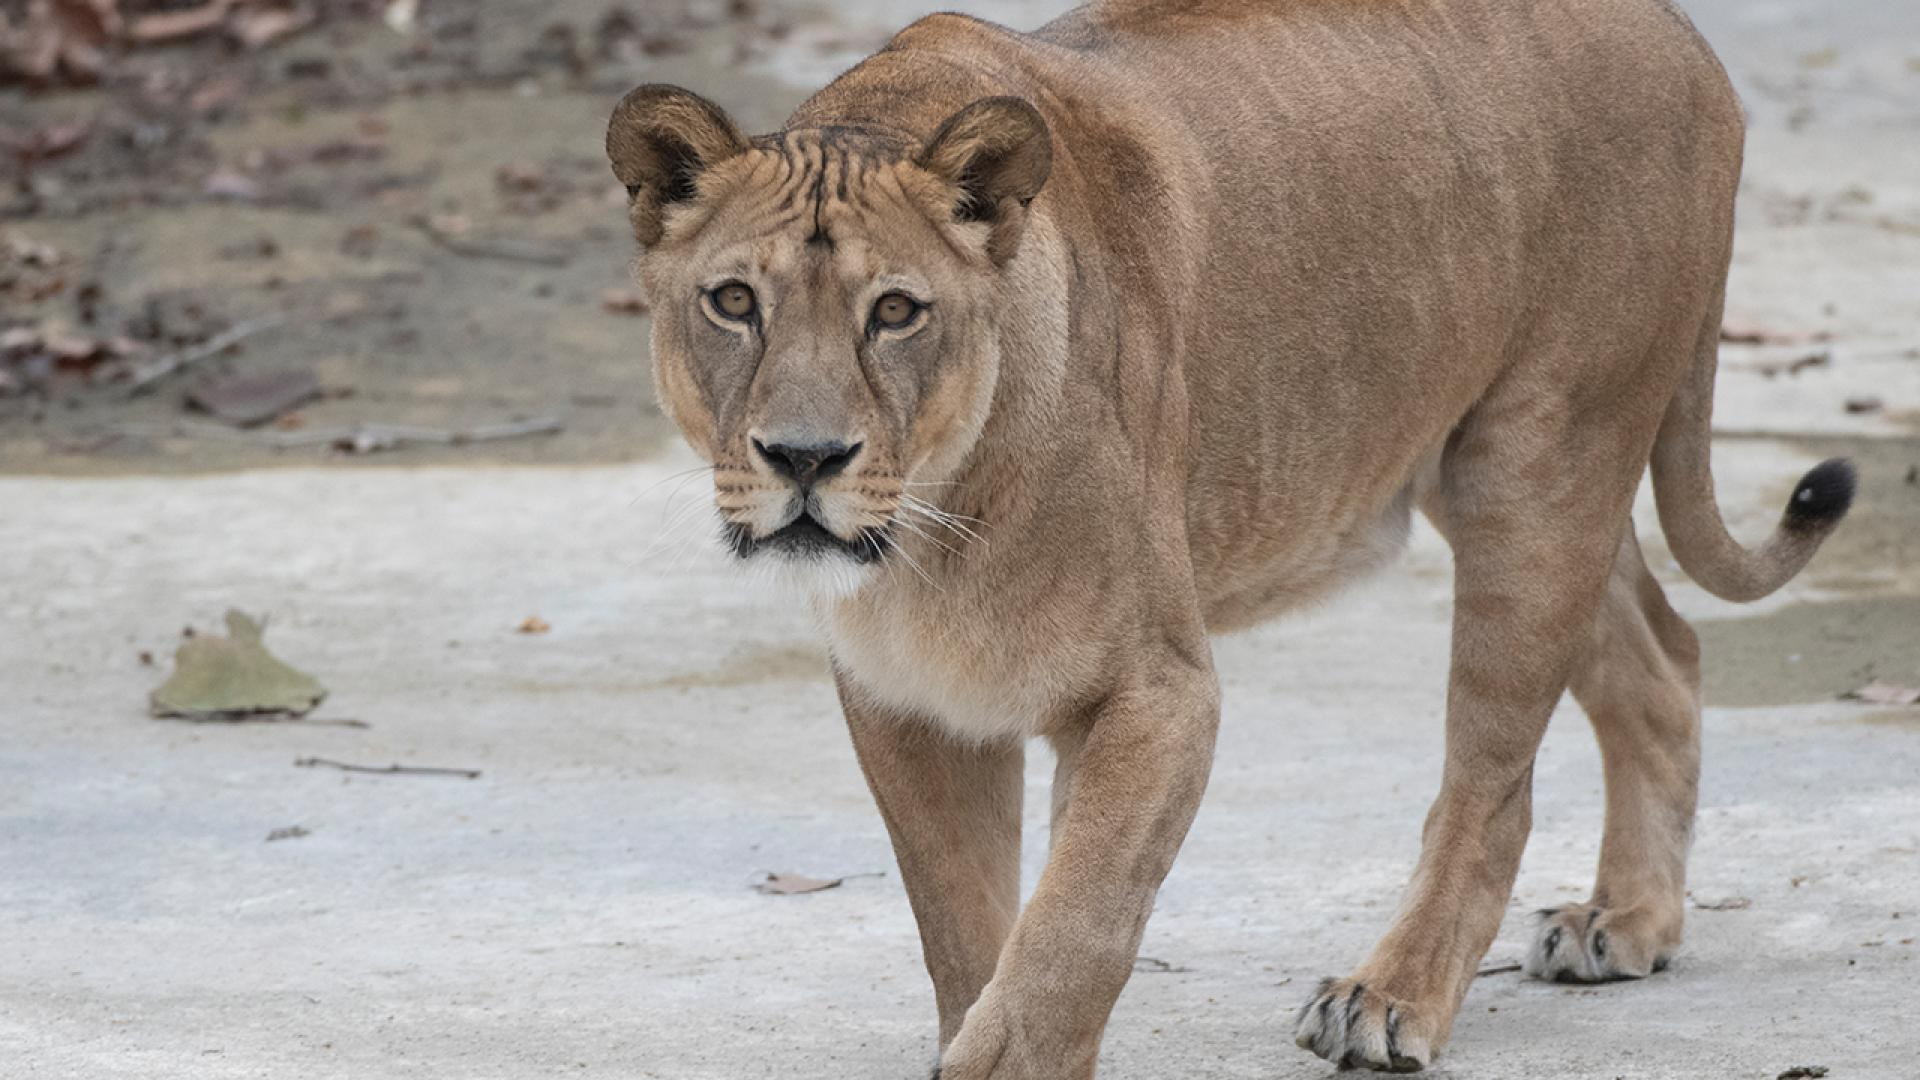 What was supposed to be a fun-filled day for a family visiting a big cat farm while on vacation became a nightmare as a lion attacked a child standing near the animal's enclosure, according to reports.